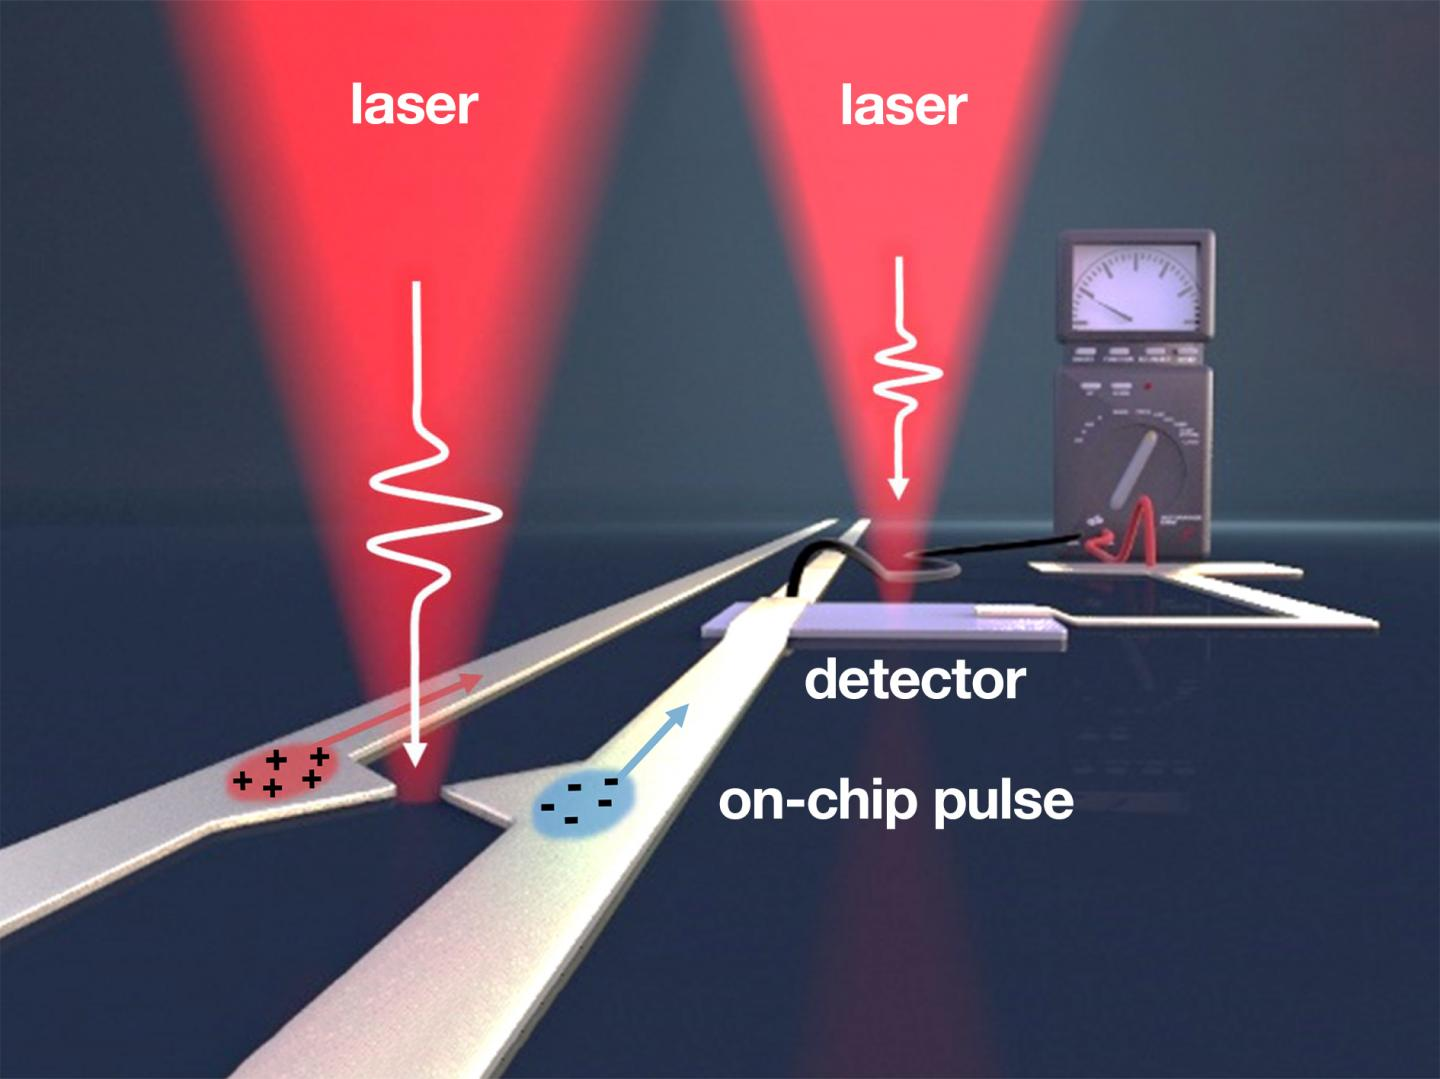 Issue 6 June Volume 20 2018 Opgir 39110 Forward Lamp Wiring Harness Plasmonic Antennas Could Deliver Ultrafast Pulses For Thz